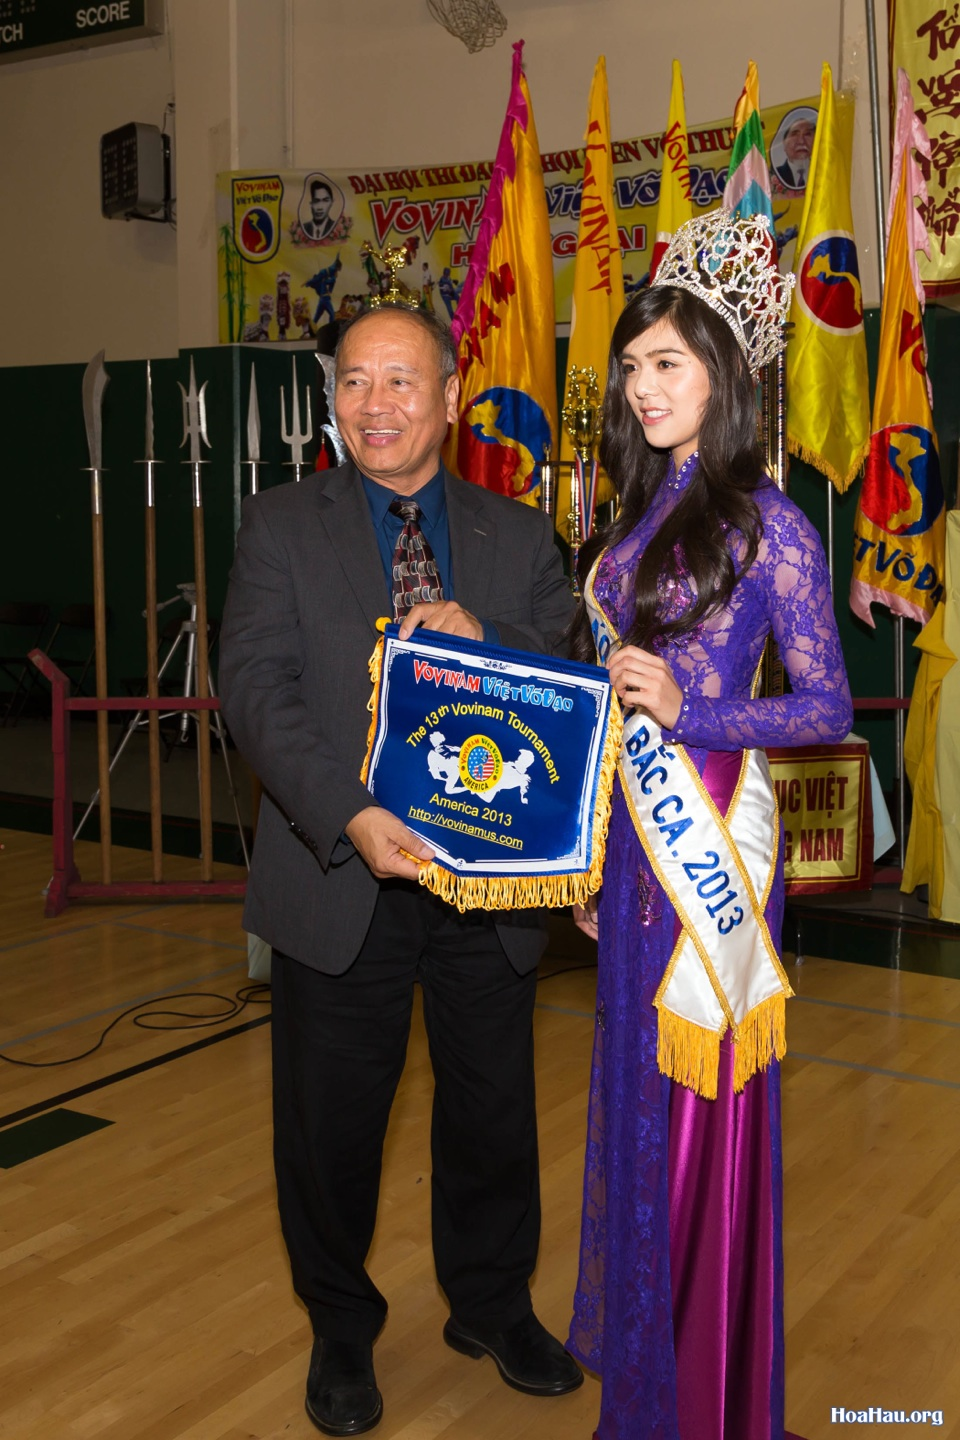 Vovinam Viet Vo Dao - 13th Annual Tournament - Yerba Buena High School - Image 028